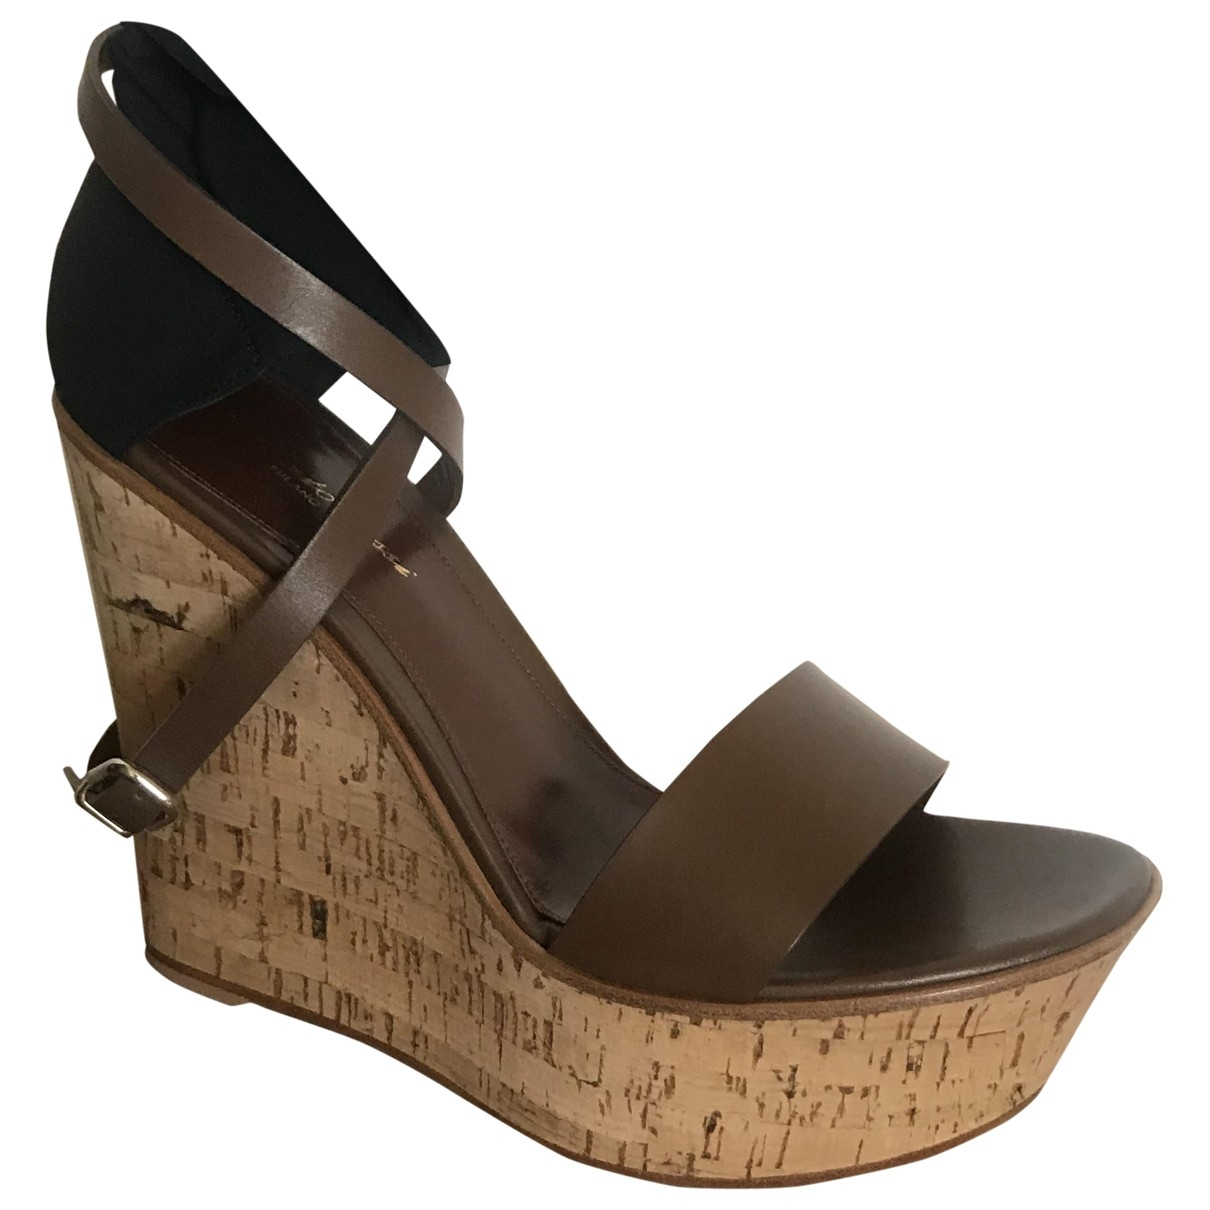 Gianvito Rossi \N Brown Leather Sandals for Women 39 EU